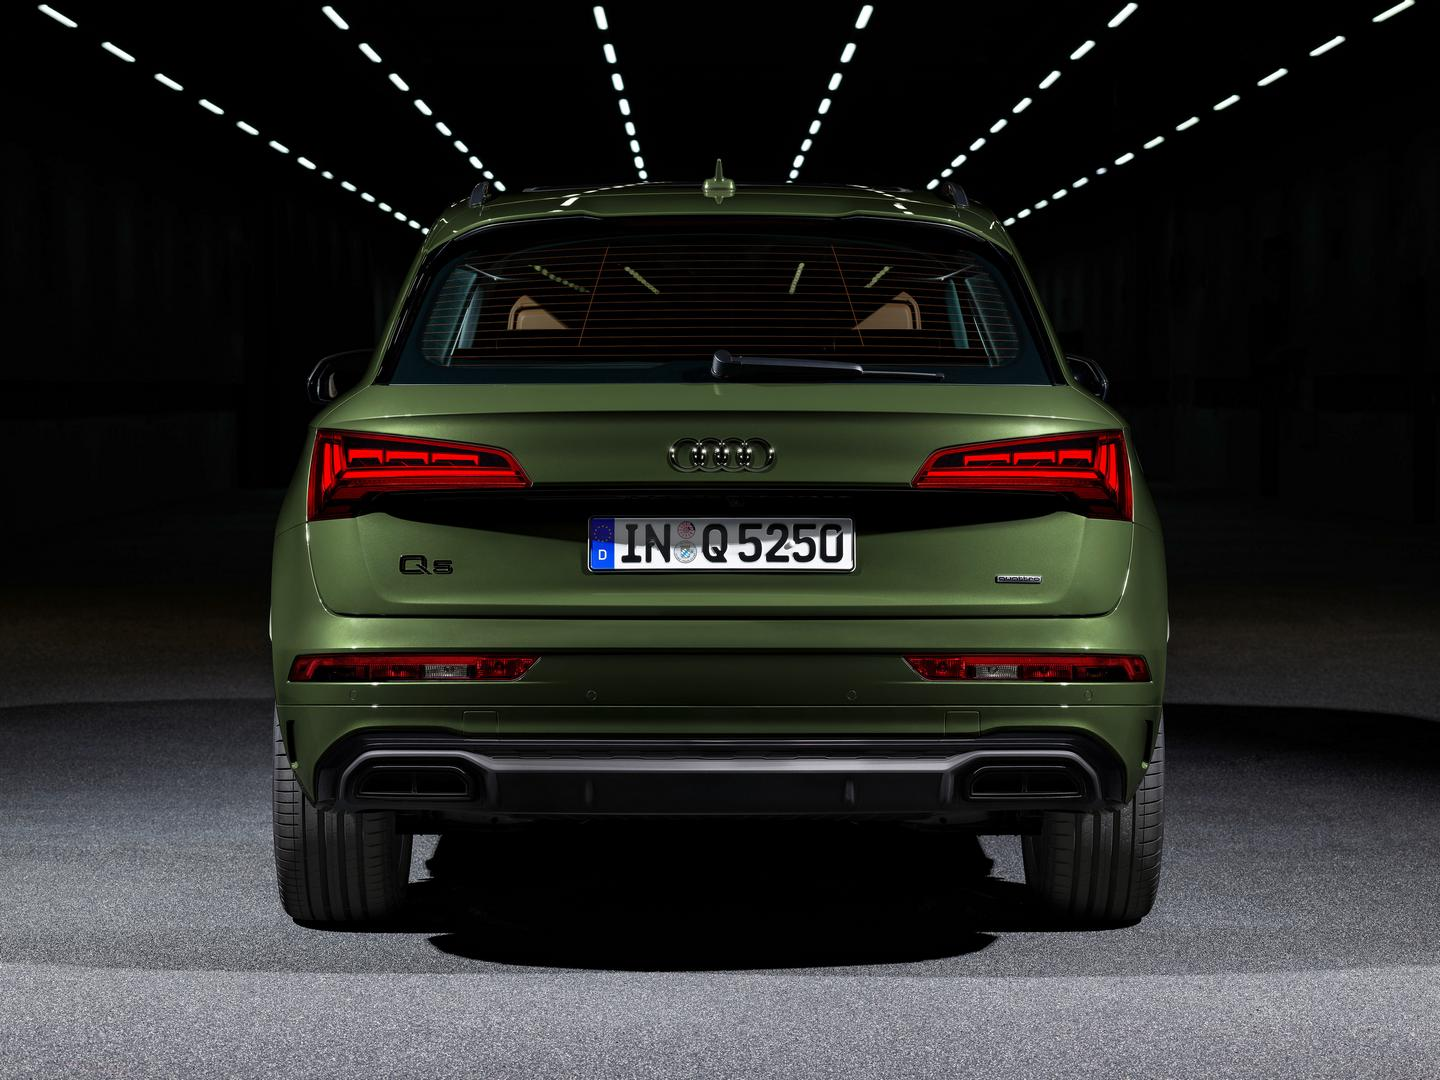 2021 Audi Q5 Rear Lights